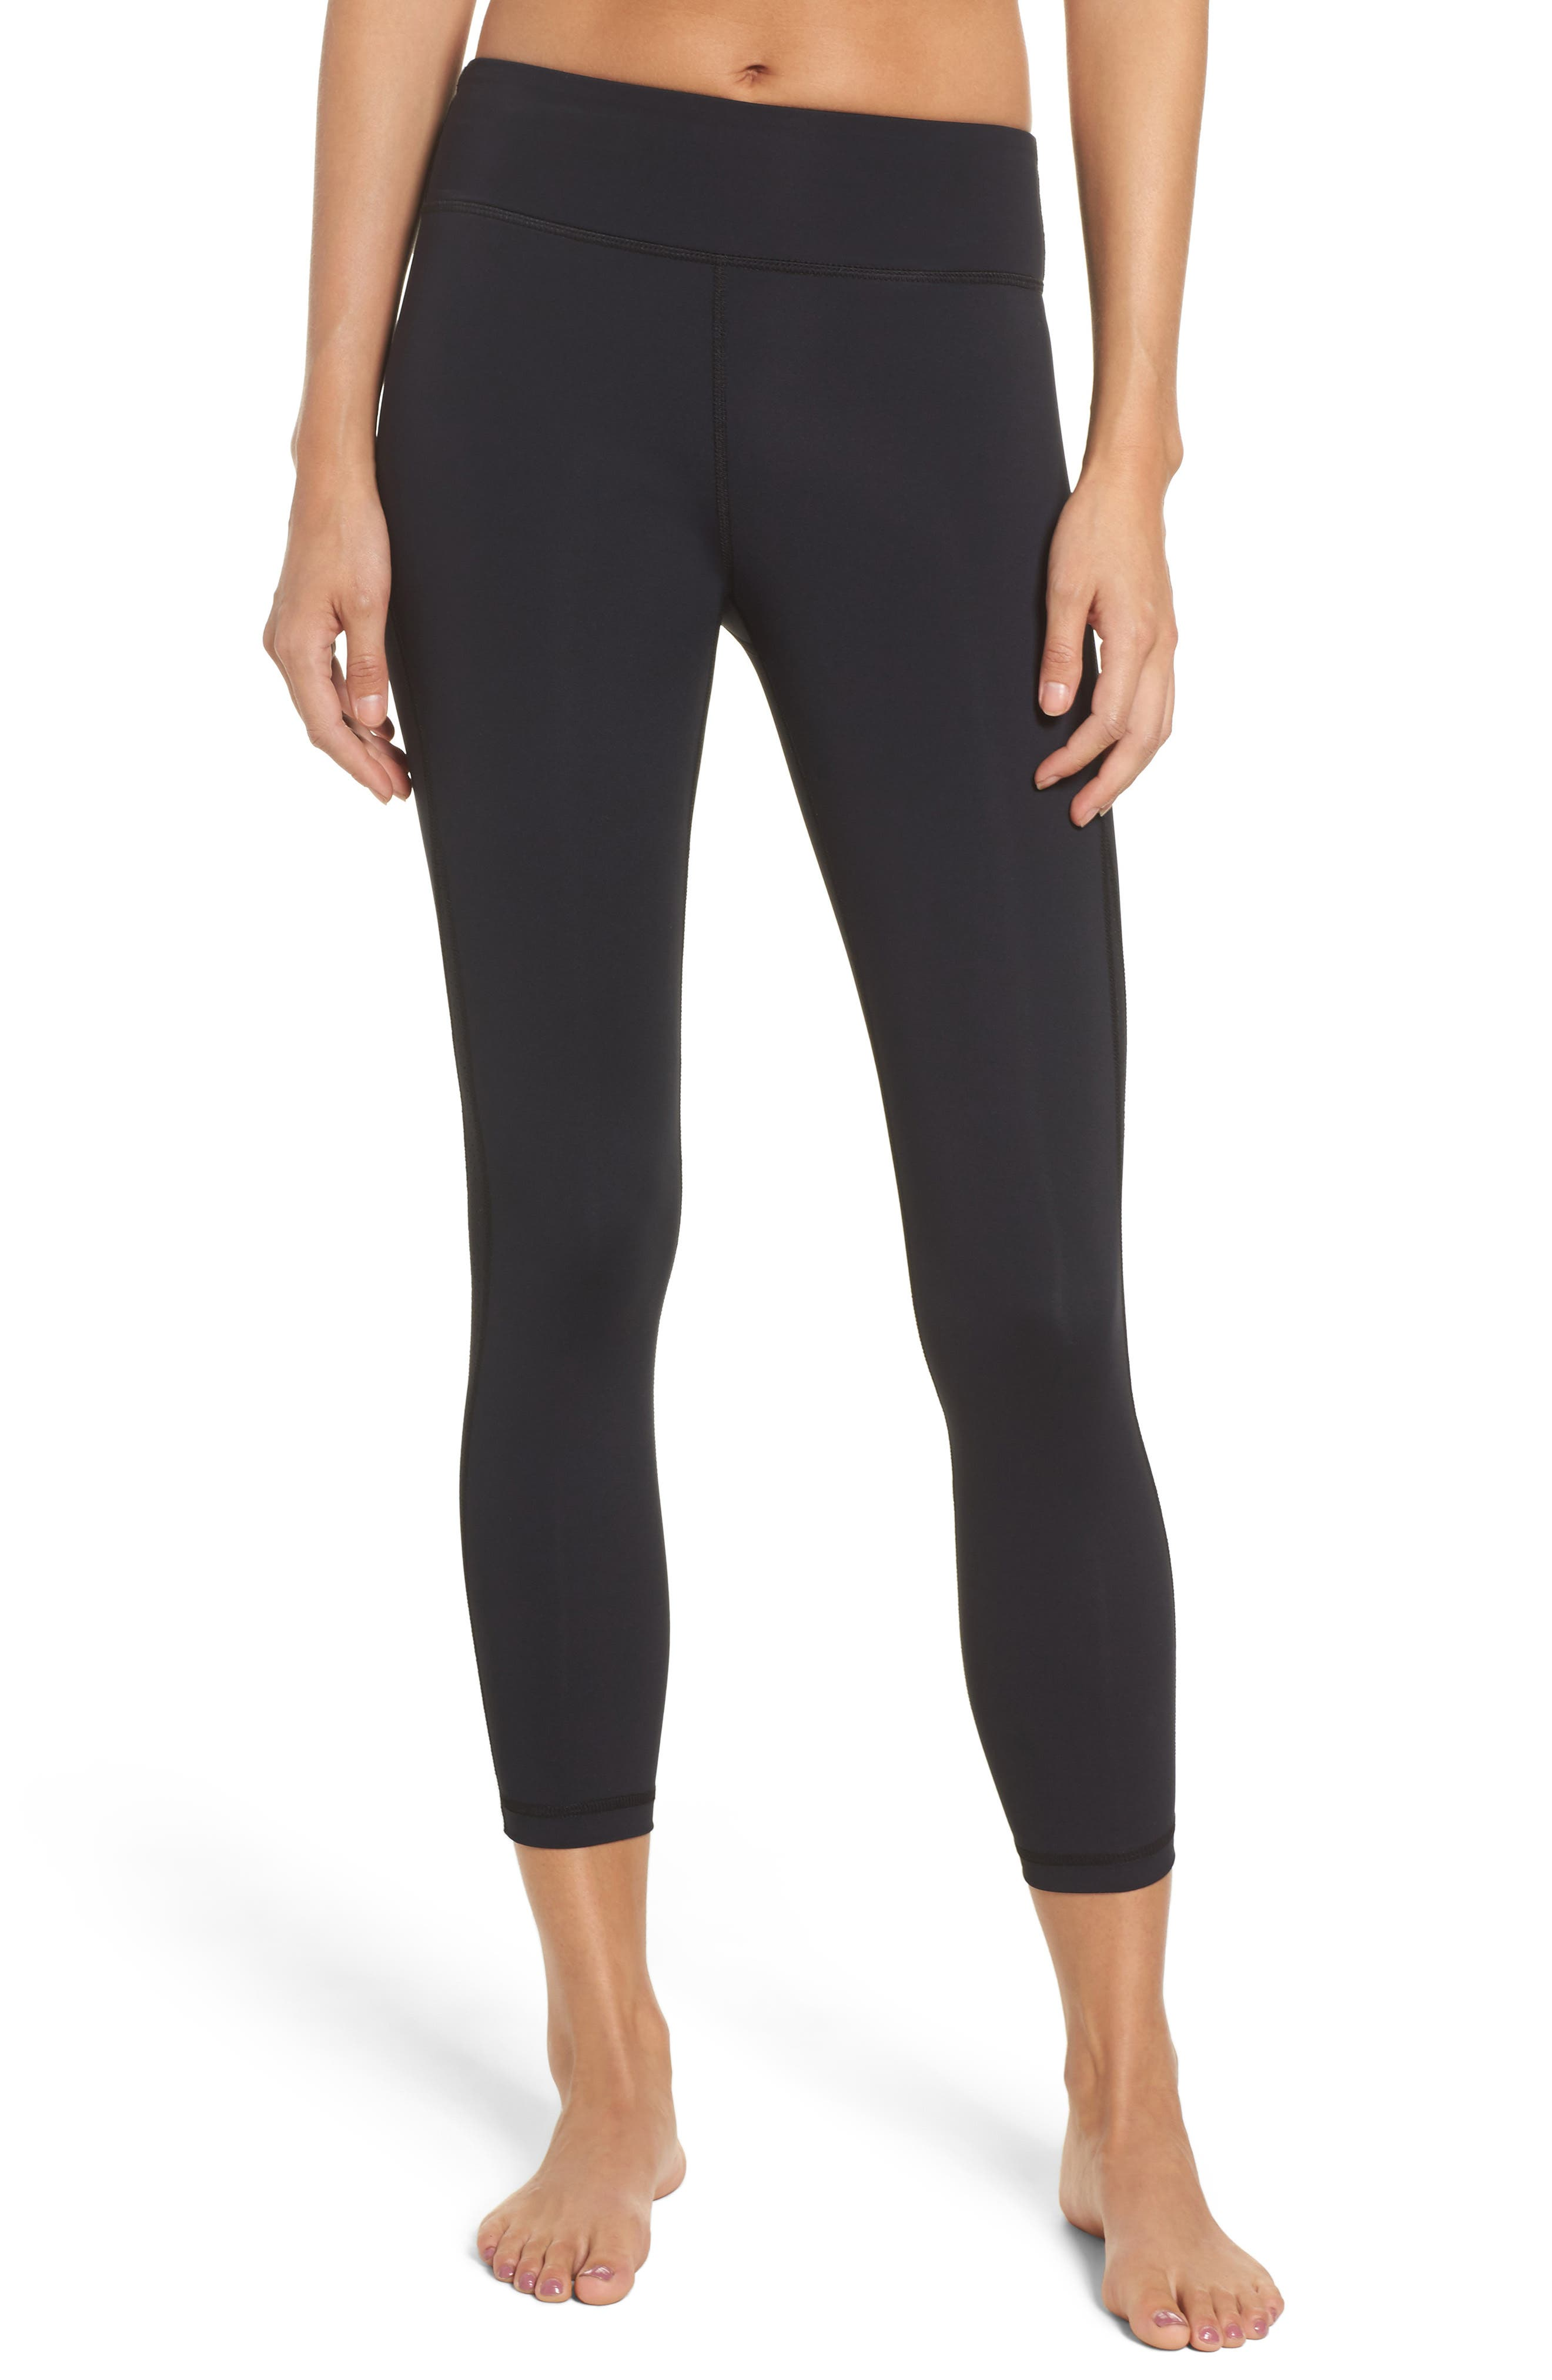 Heroine Performance Tights,                         Main,                         color, 004